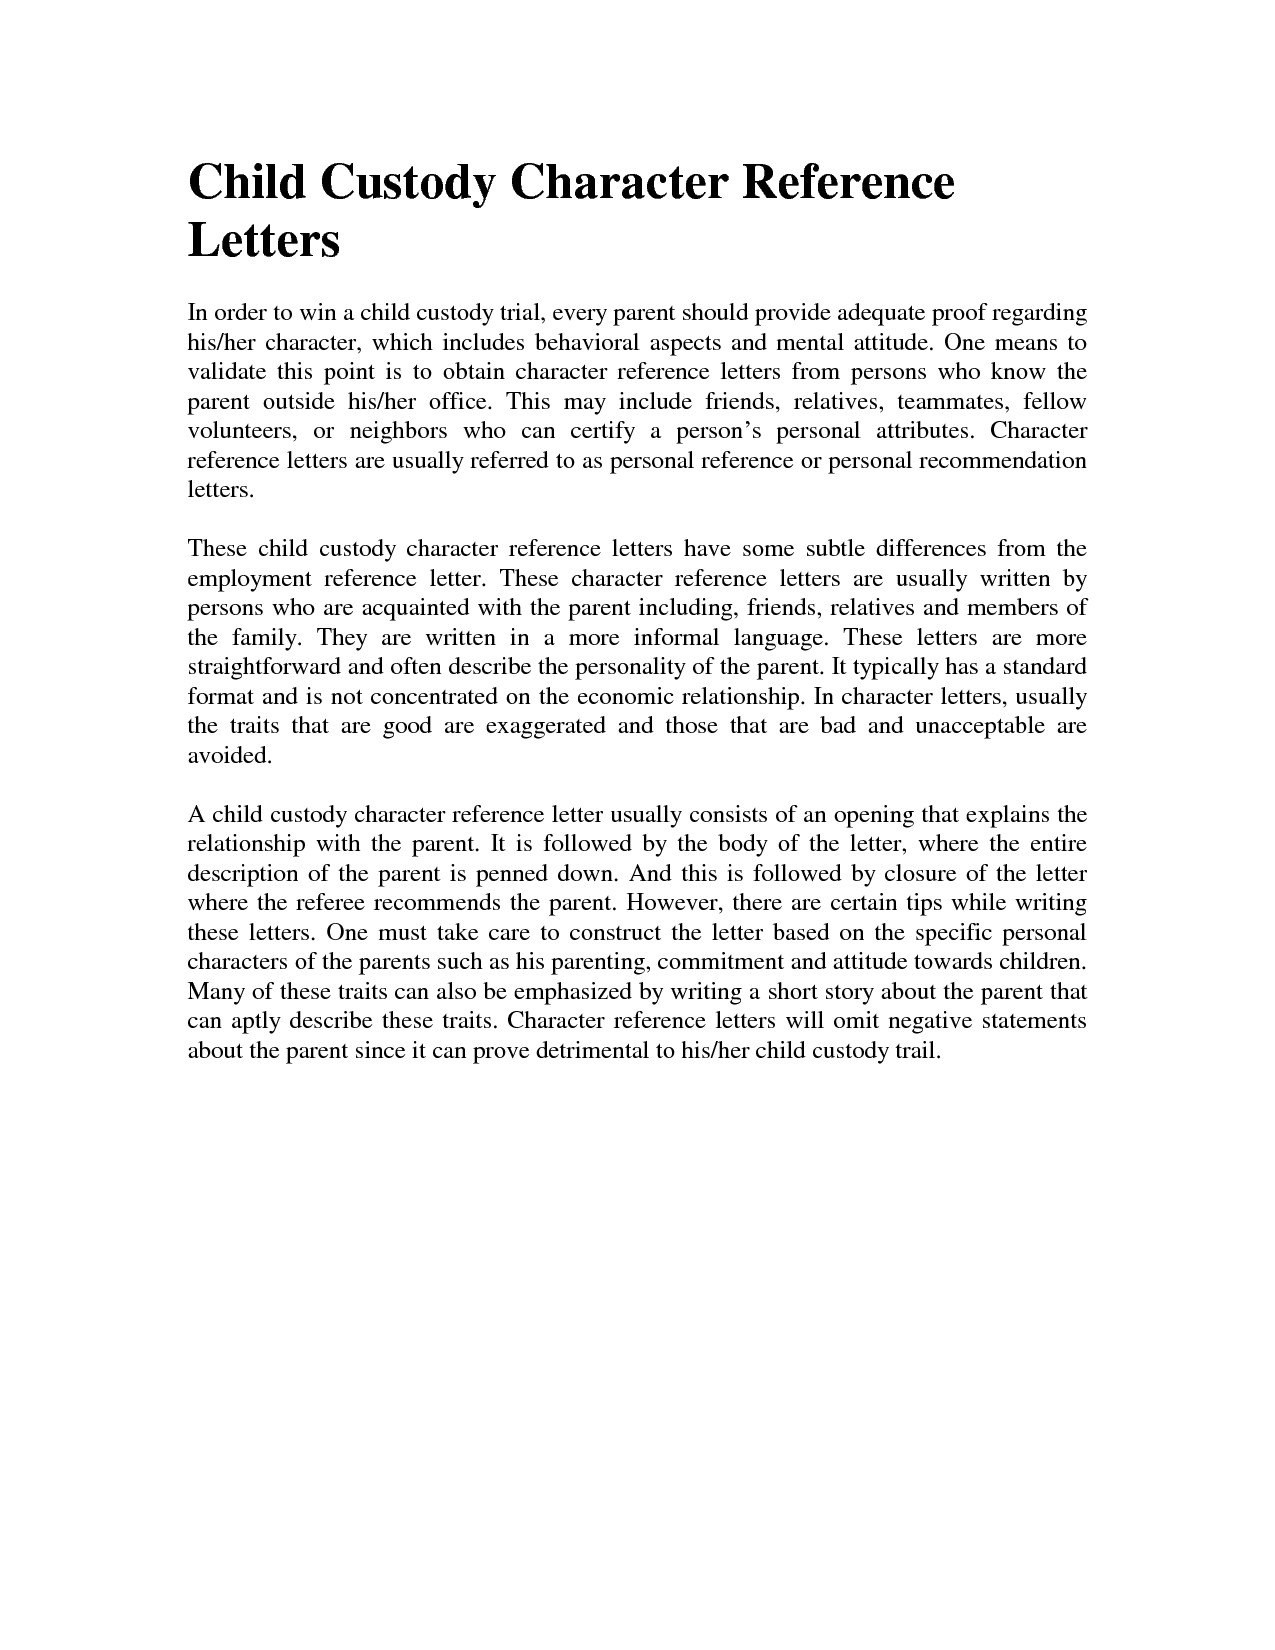 custody letter of recommendation sample